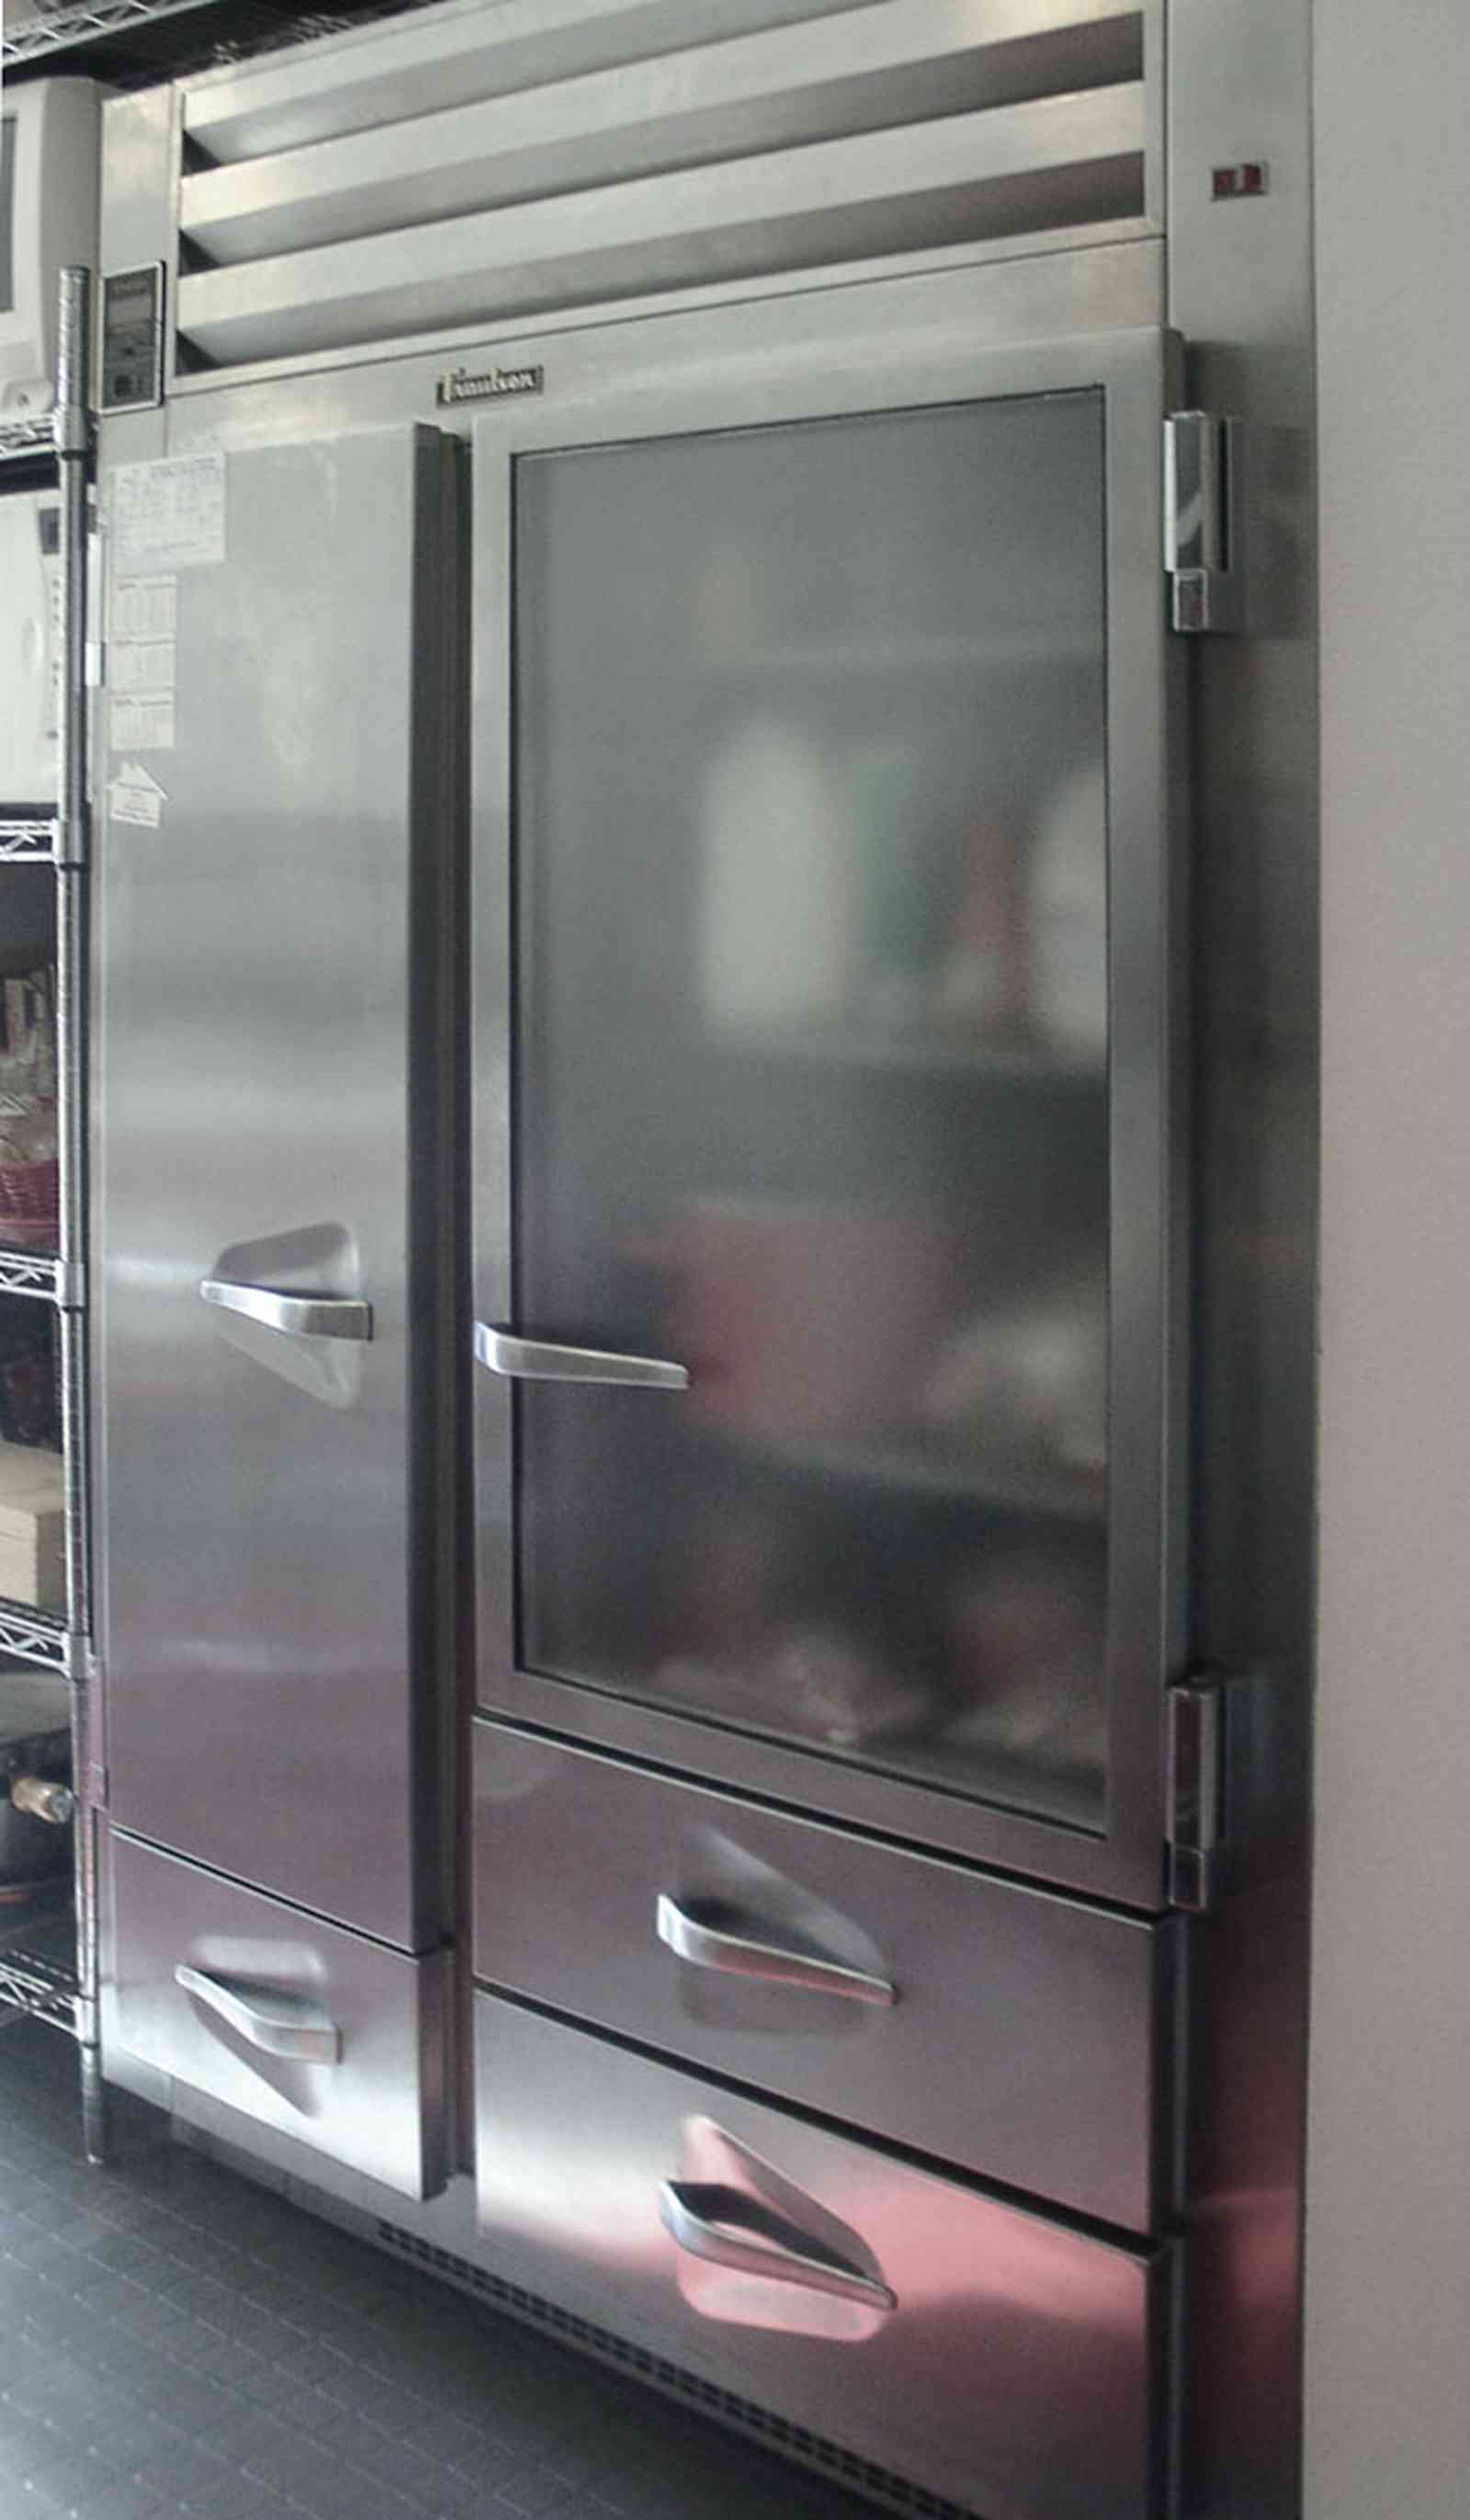 Pensacola:-Seville-Historic-District:-529-East-Government-Street_20b.jpg:  commercial refrigerator, kitchen